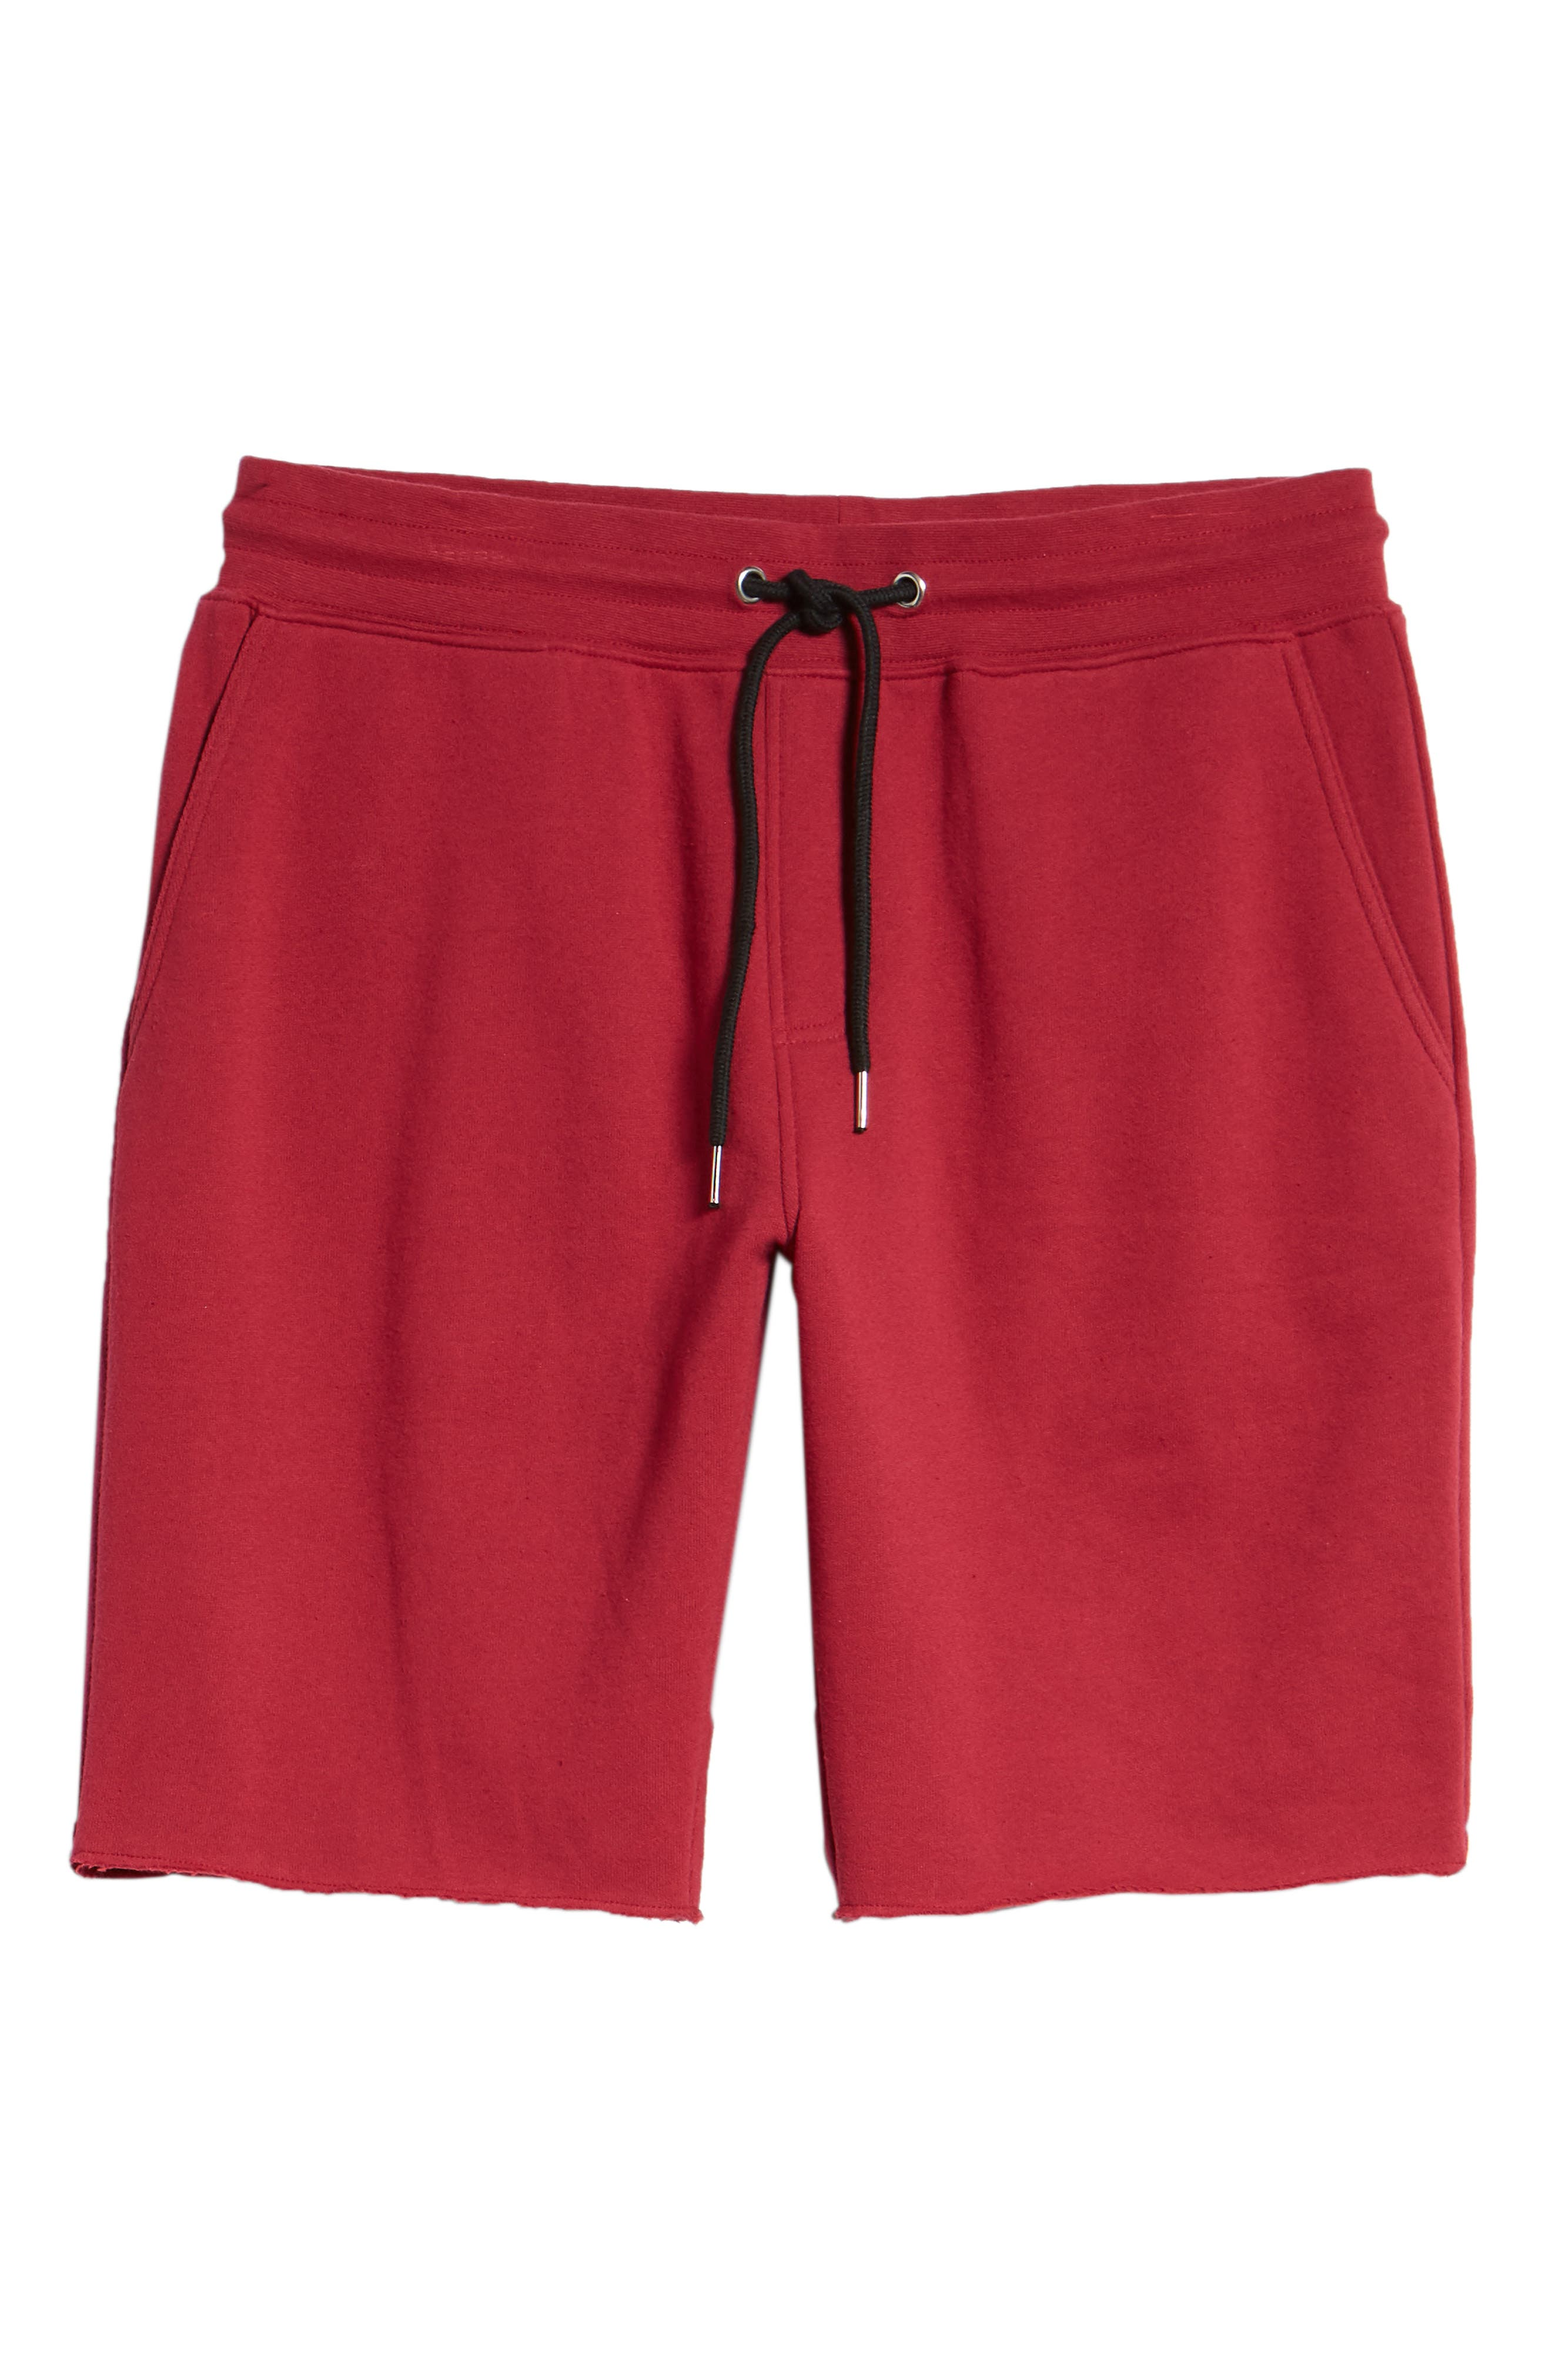 Fleece Shorts,                             Alternate thumbnail 6, color,                             601